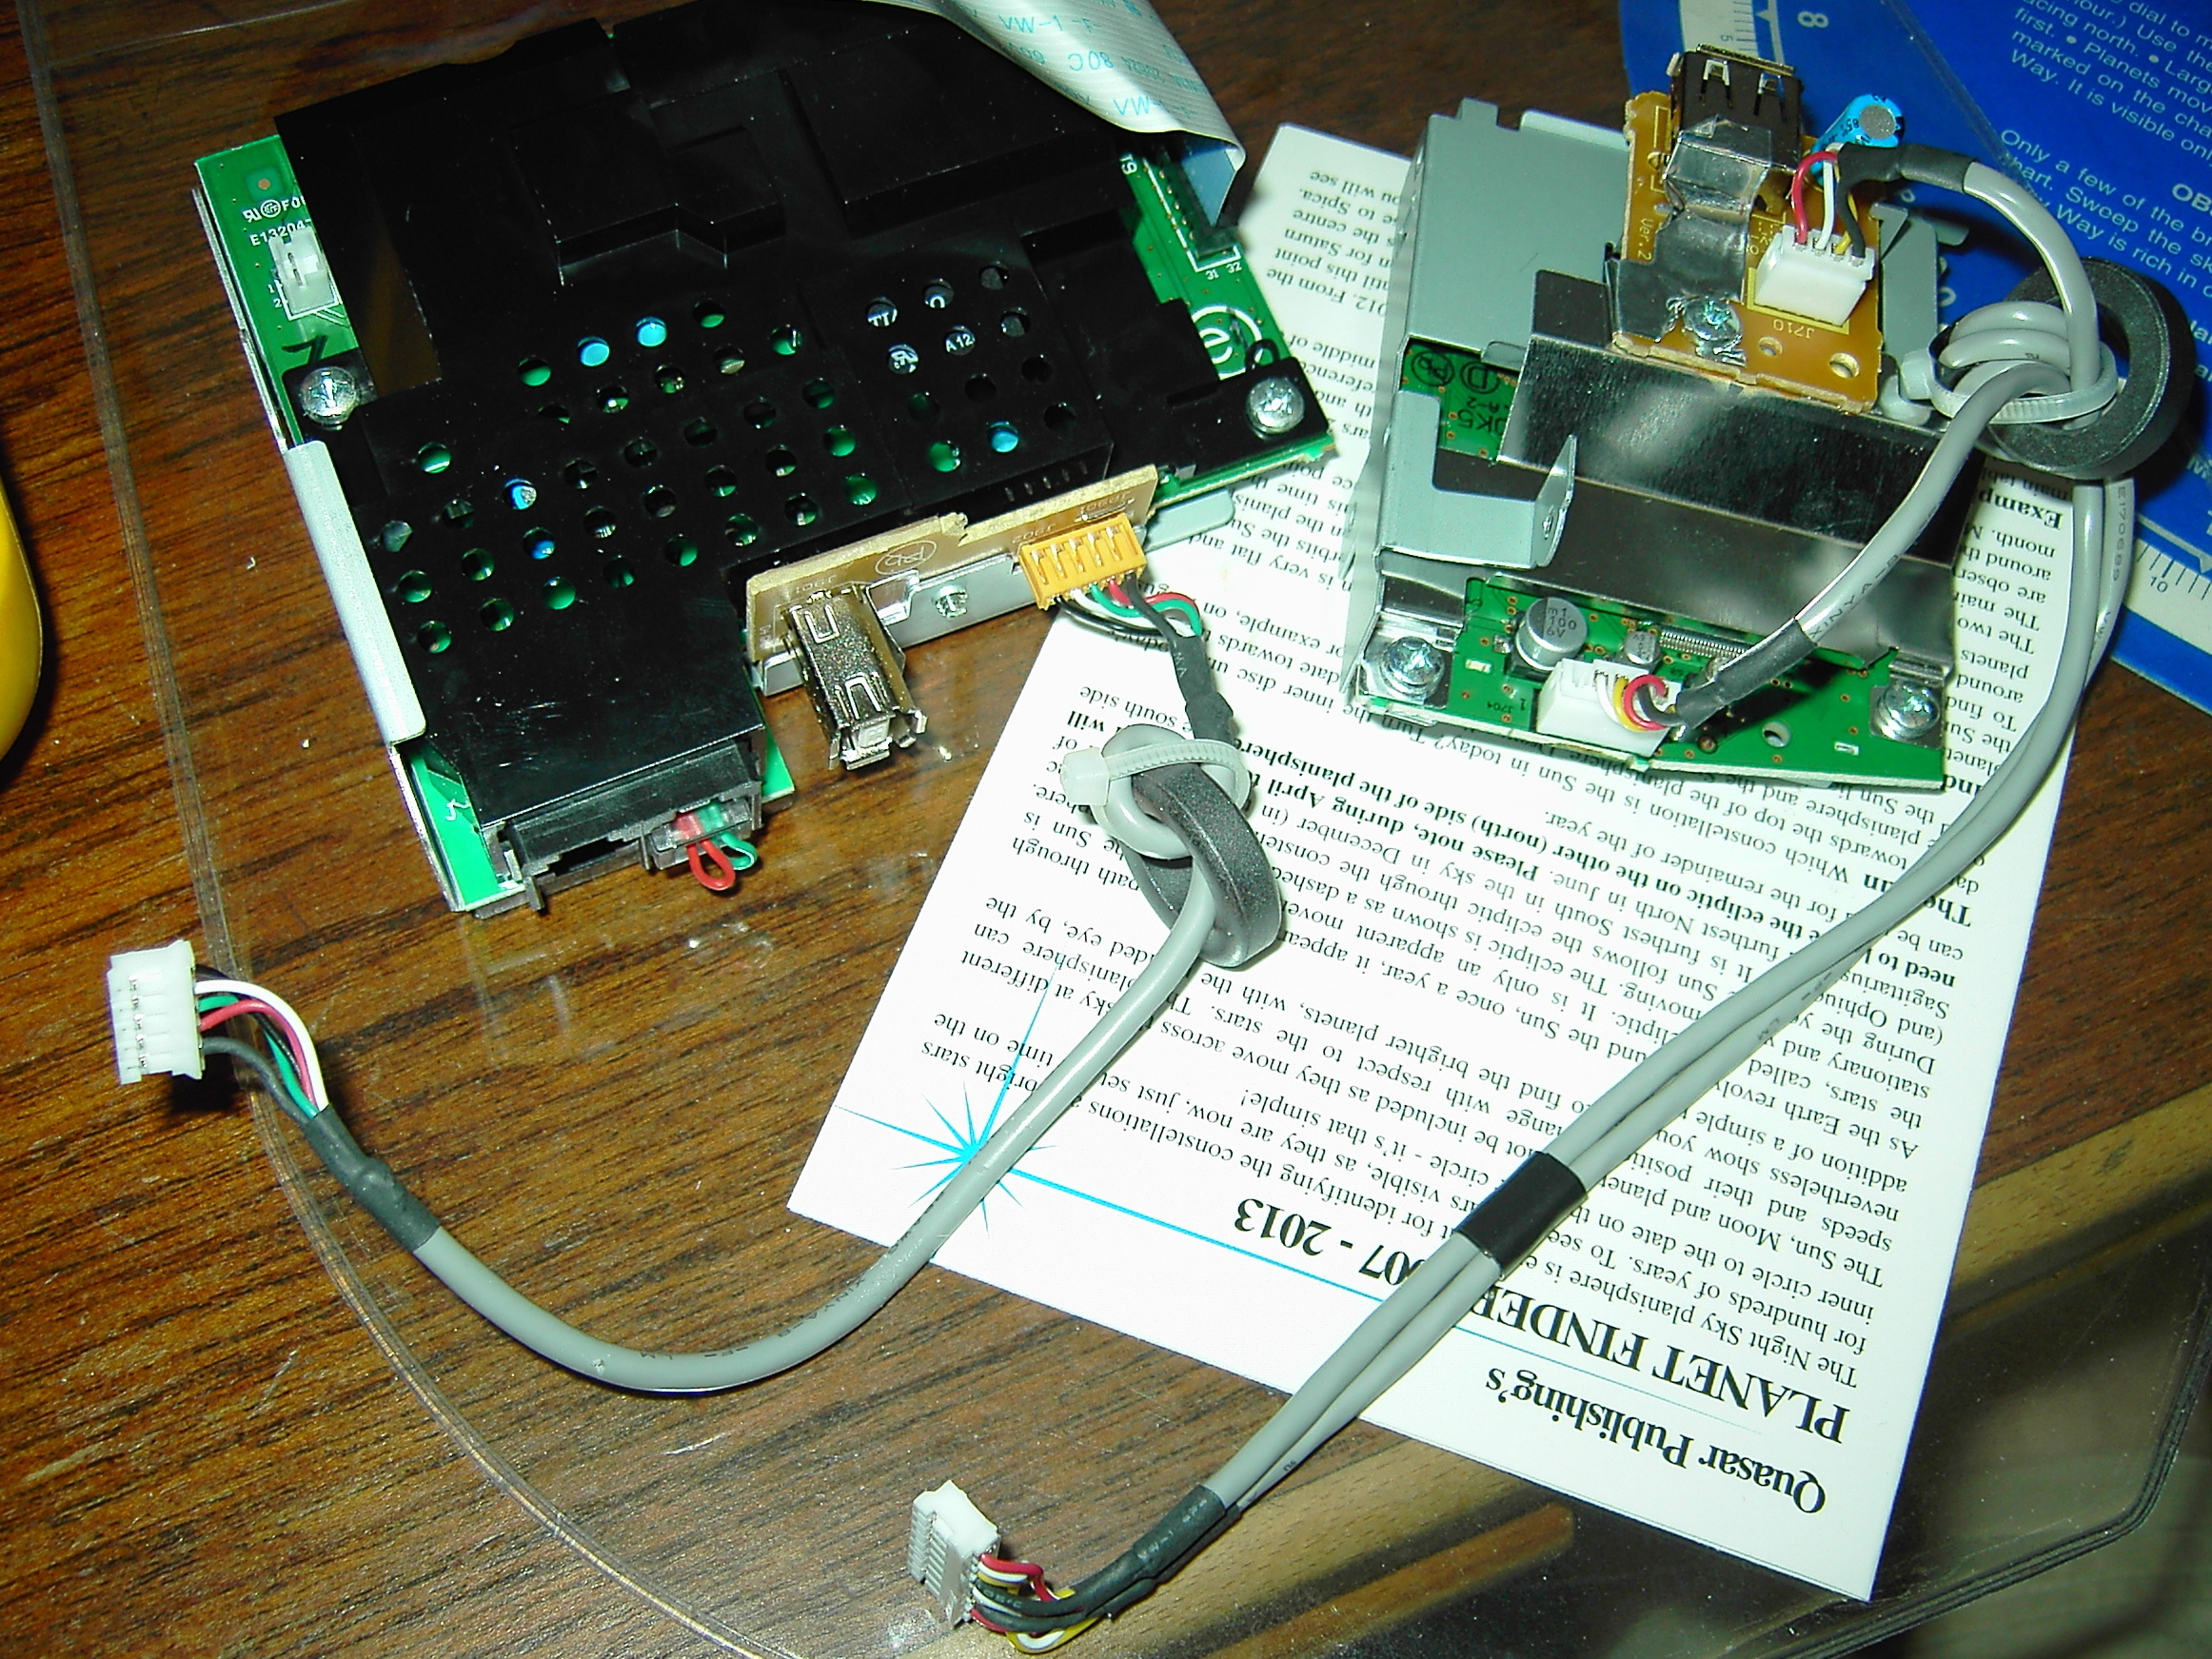 USB Card Reader from a Dumped USB Printer